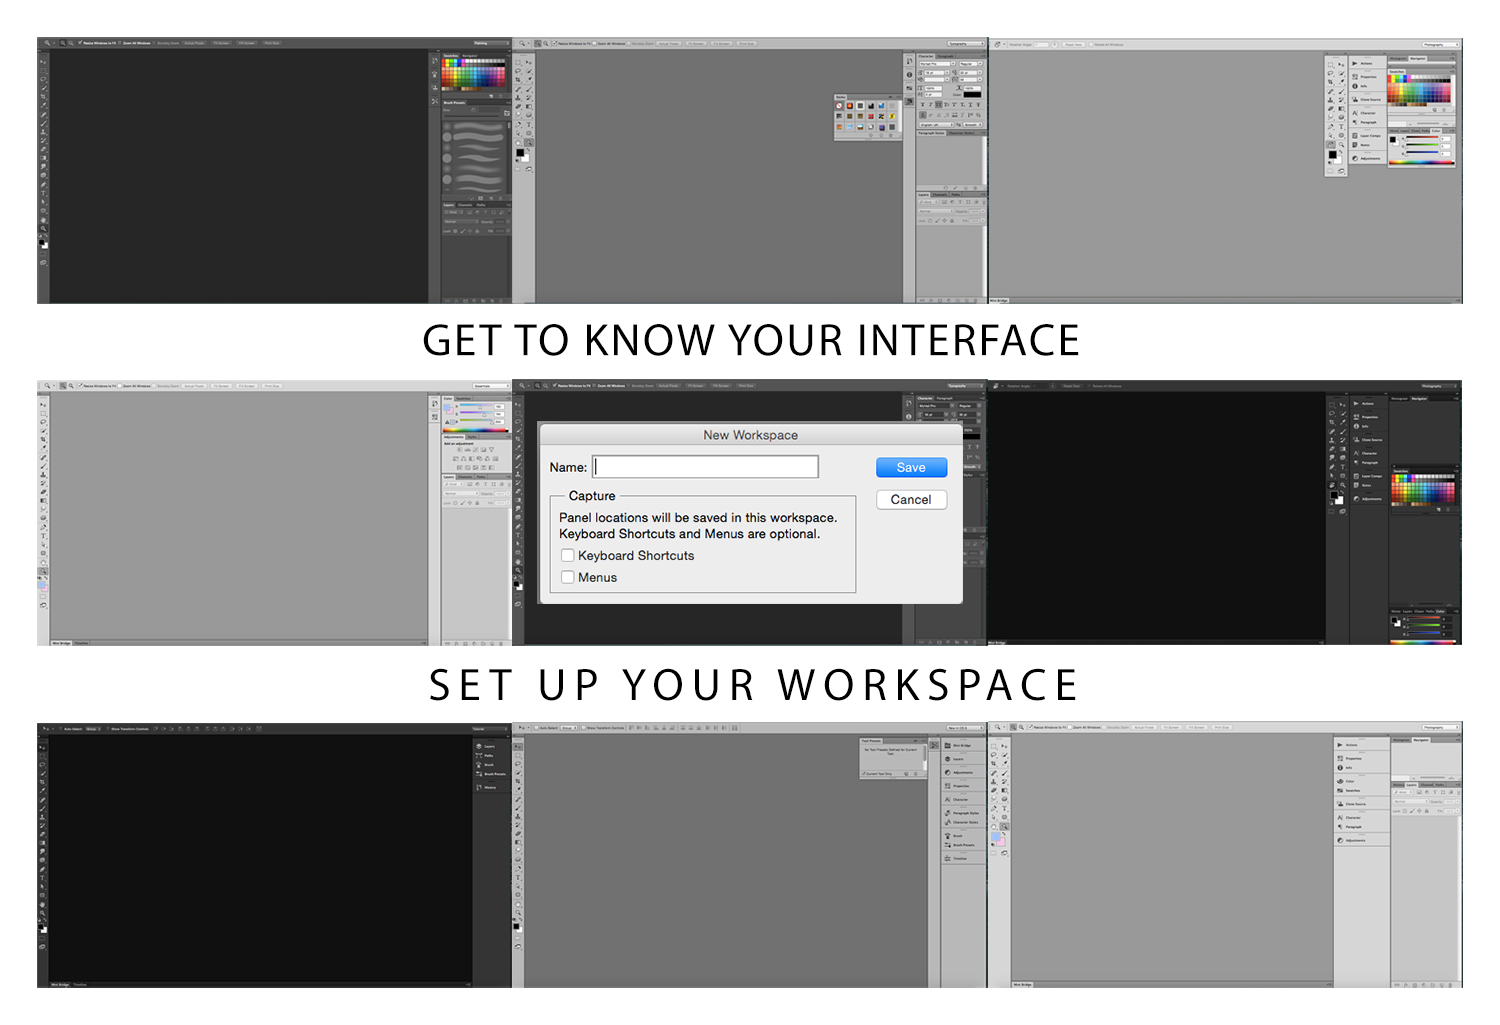 https://i0.wp.com/digital-photography-school.com/wp-content/uploads/2018/07/PS-Get-to-Know-Your-Interface-Setup-Your-Interface.jpg?resize=1500%2C1025&ssl=1